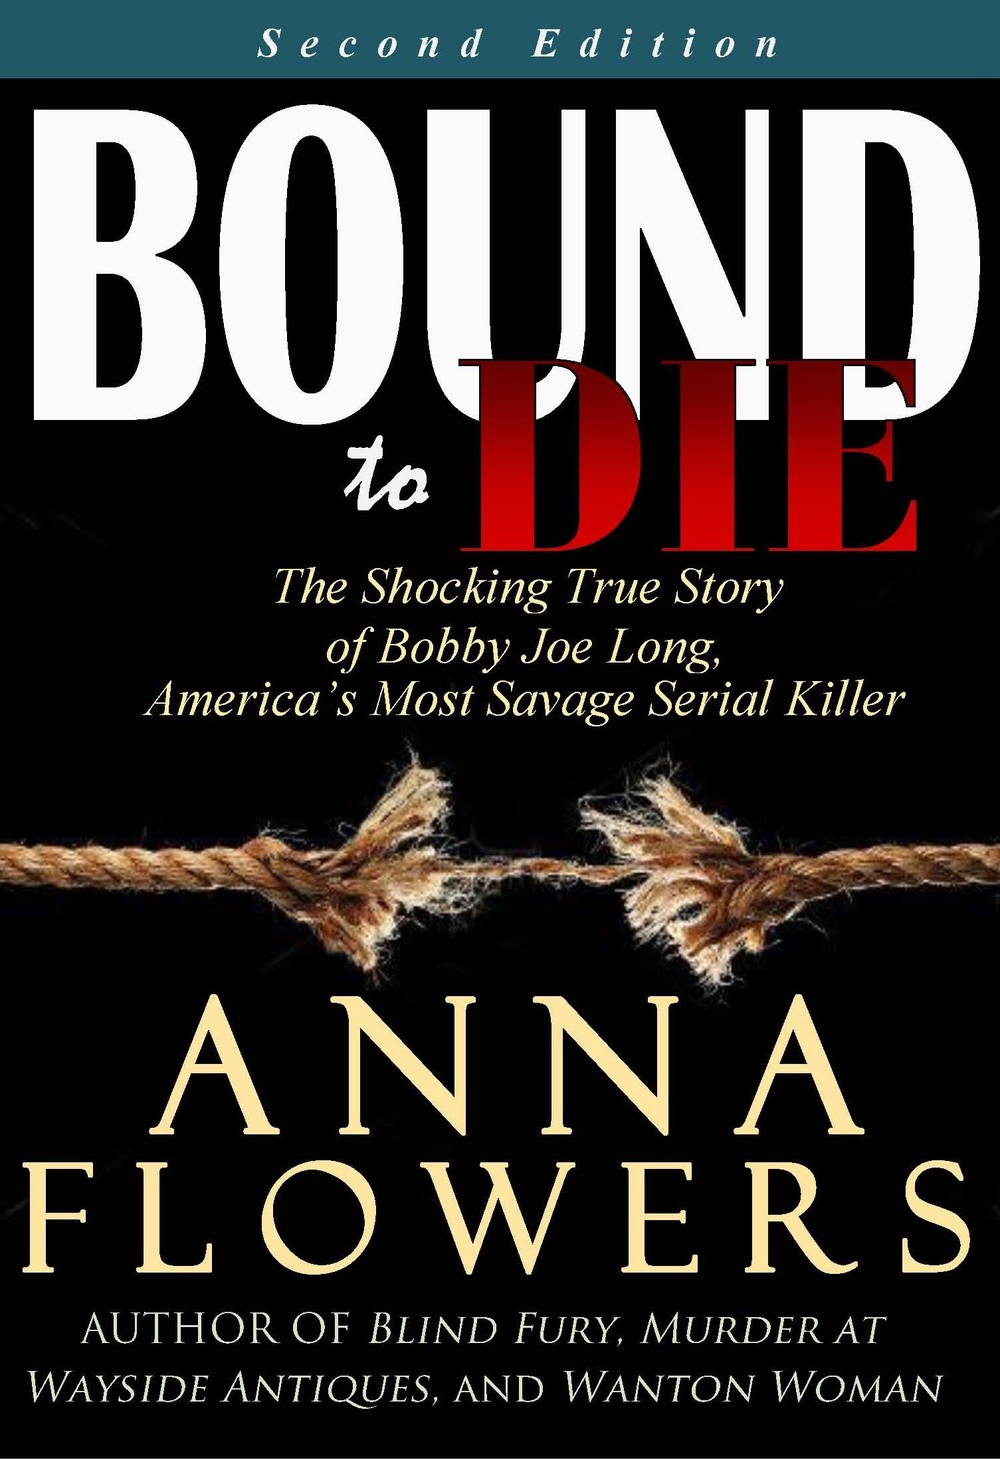 'Bound to Die: The Shocking True Story of Bobby Joe Long, America's Most Savage Serial Killer' by Anna Flowers